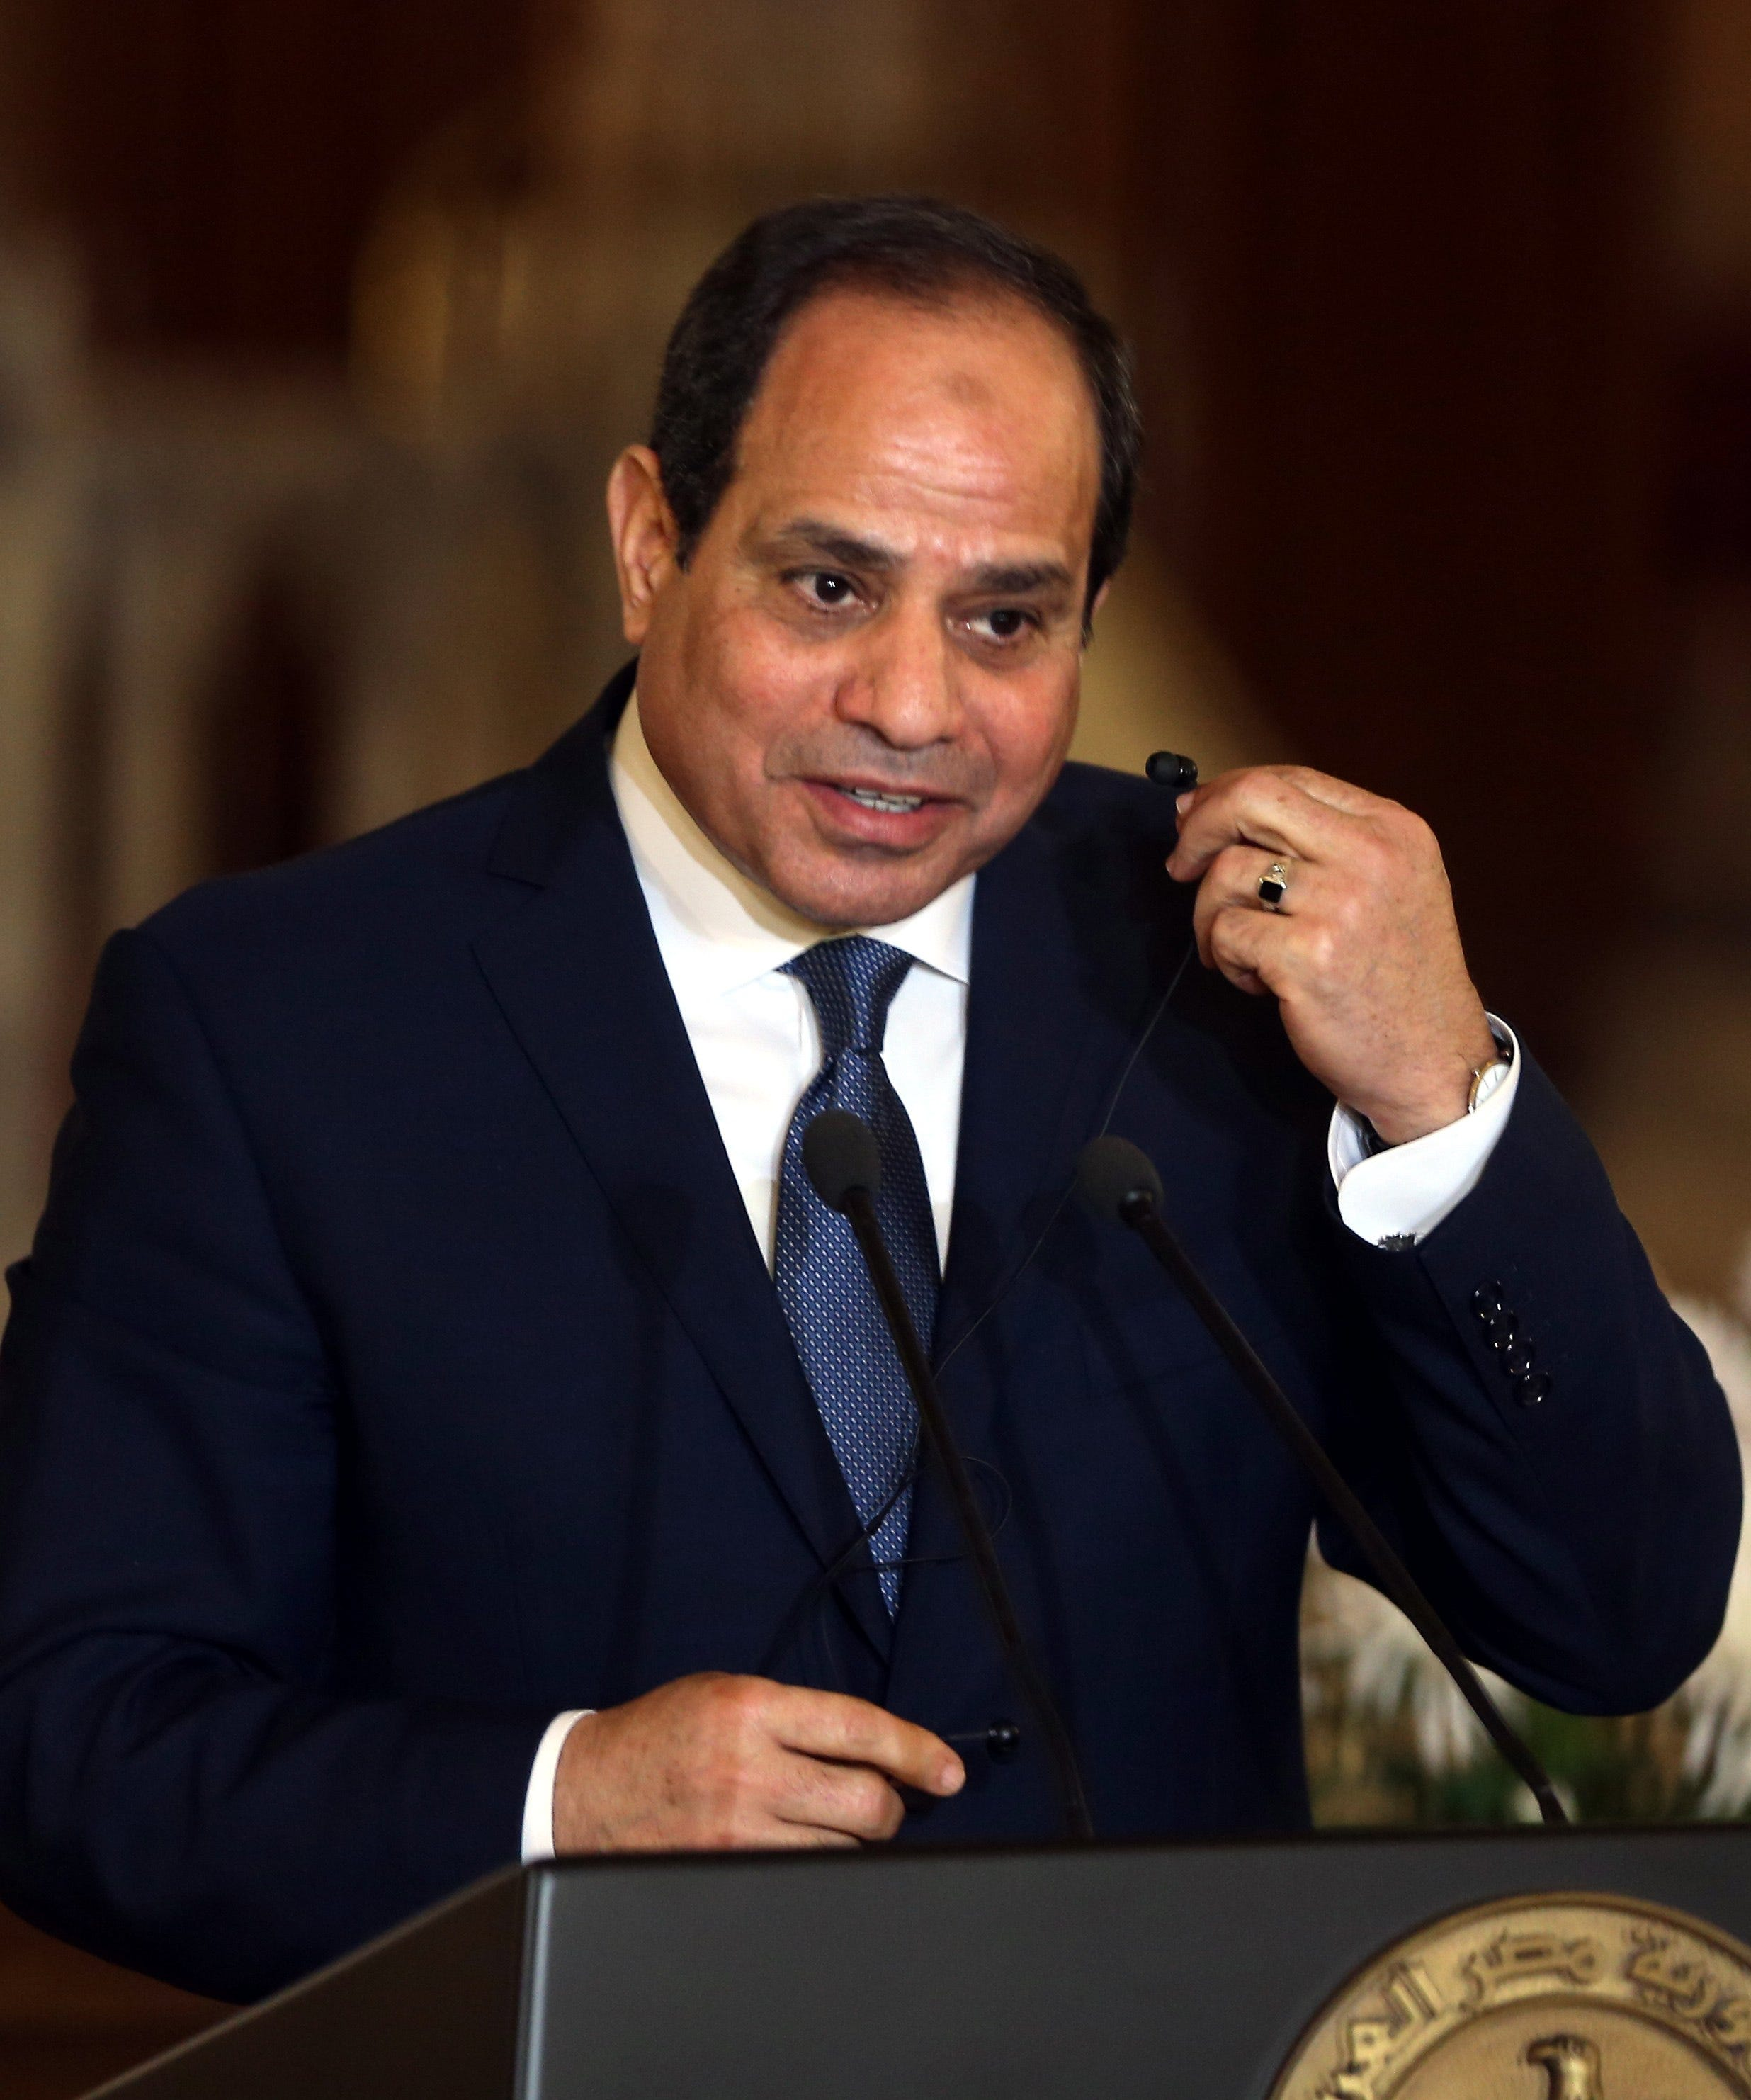 abdel fattah el sisi thesis President abdel fattah el-sisi of egypt got just what he was looking for: validation from an american president after the cold shoulder of the recent past.